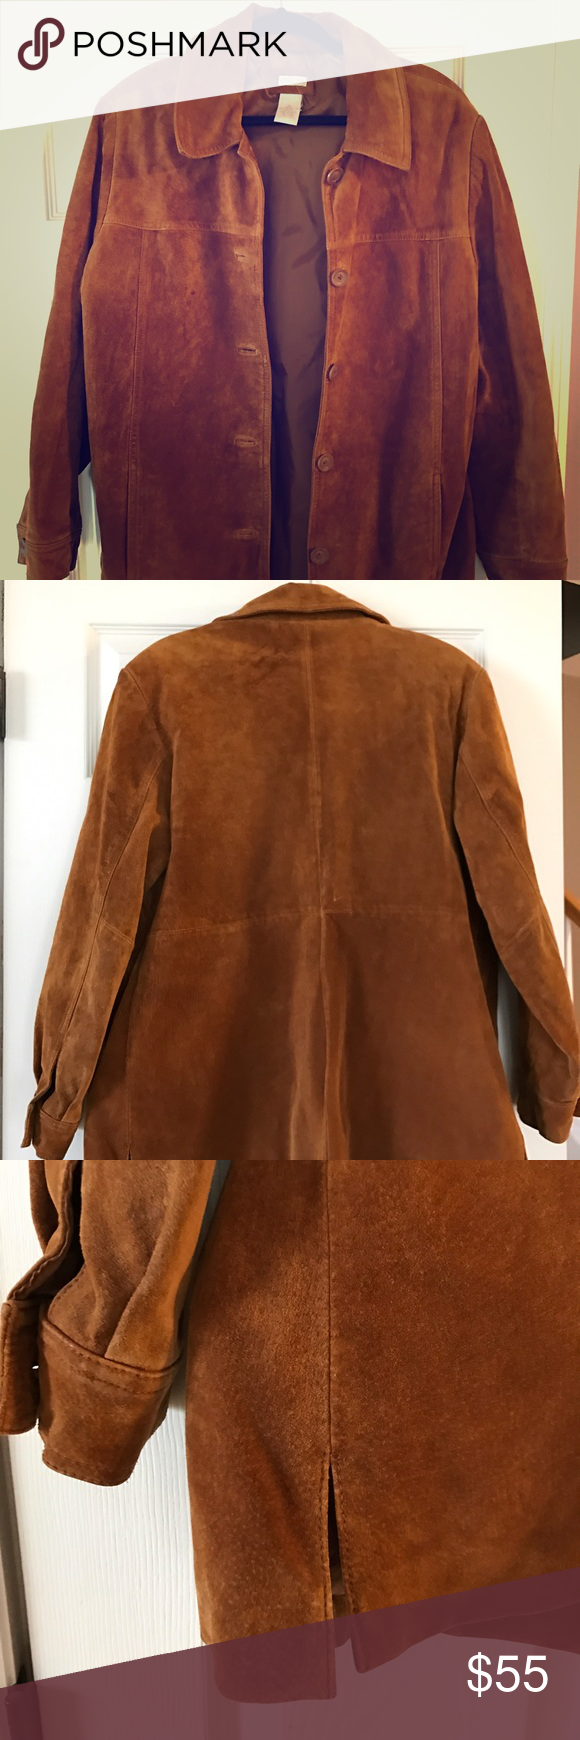 Suede Leather Jacket No blemishes, nice liner, excellent condition. Cherokee Jackets & Coats Blazers